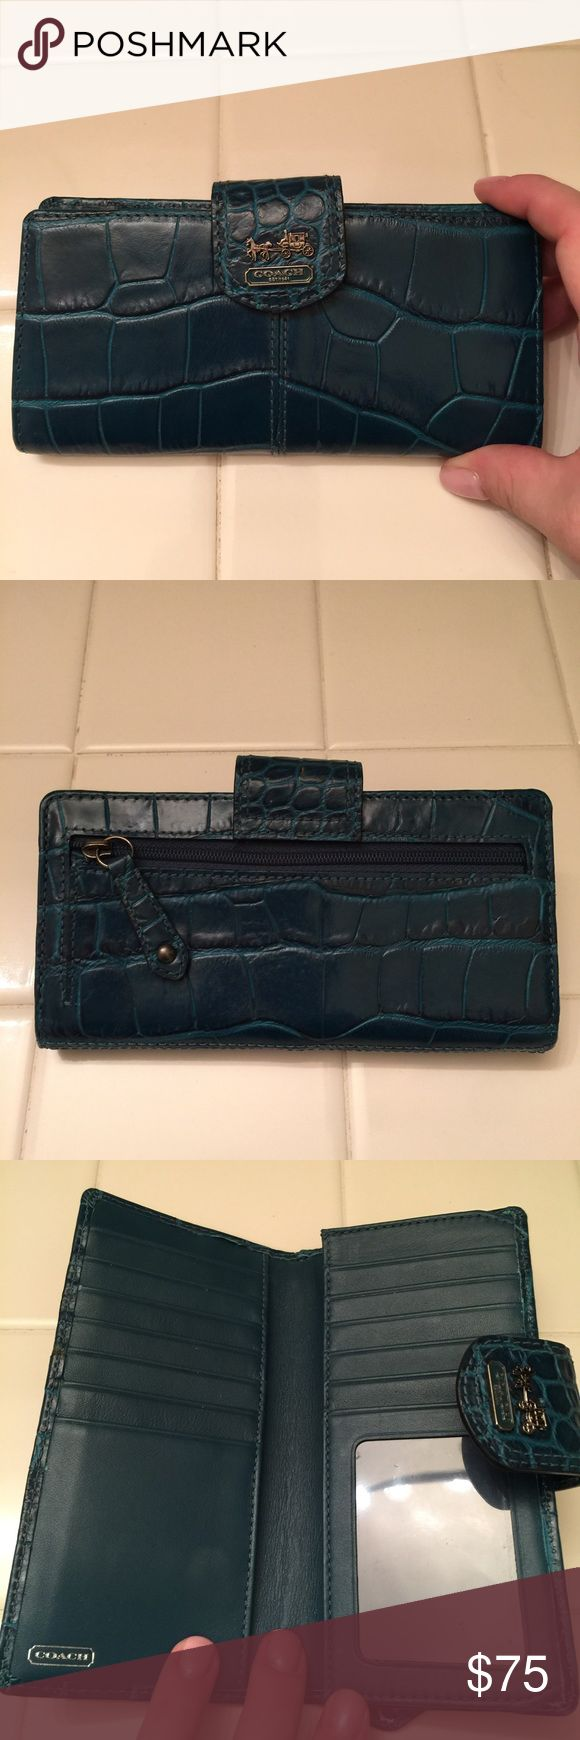 Coach croc embossed leather skinny Wallet Coach embossed leather skinny wallet in teal blue. Like new condition. Gunmetal hardware. Coach Bags Wallets